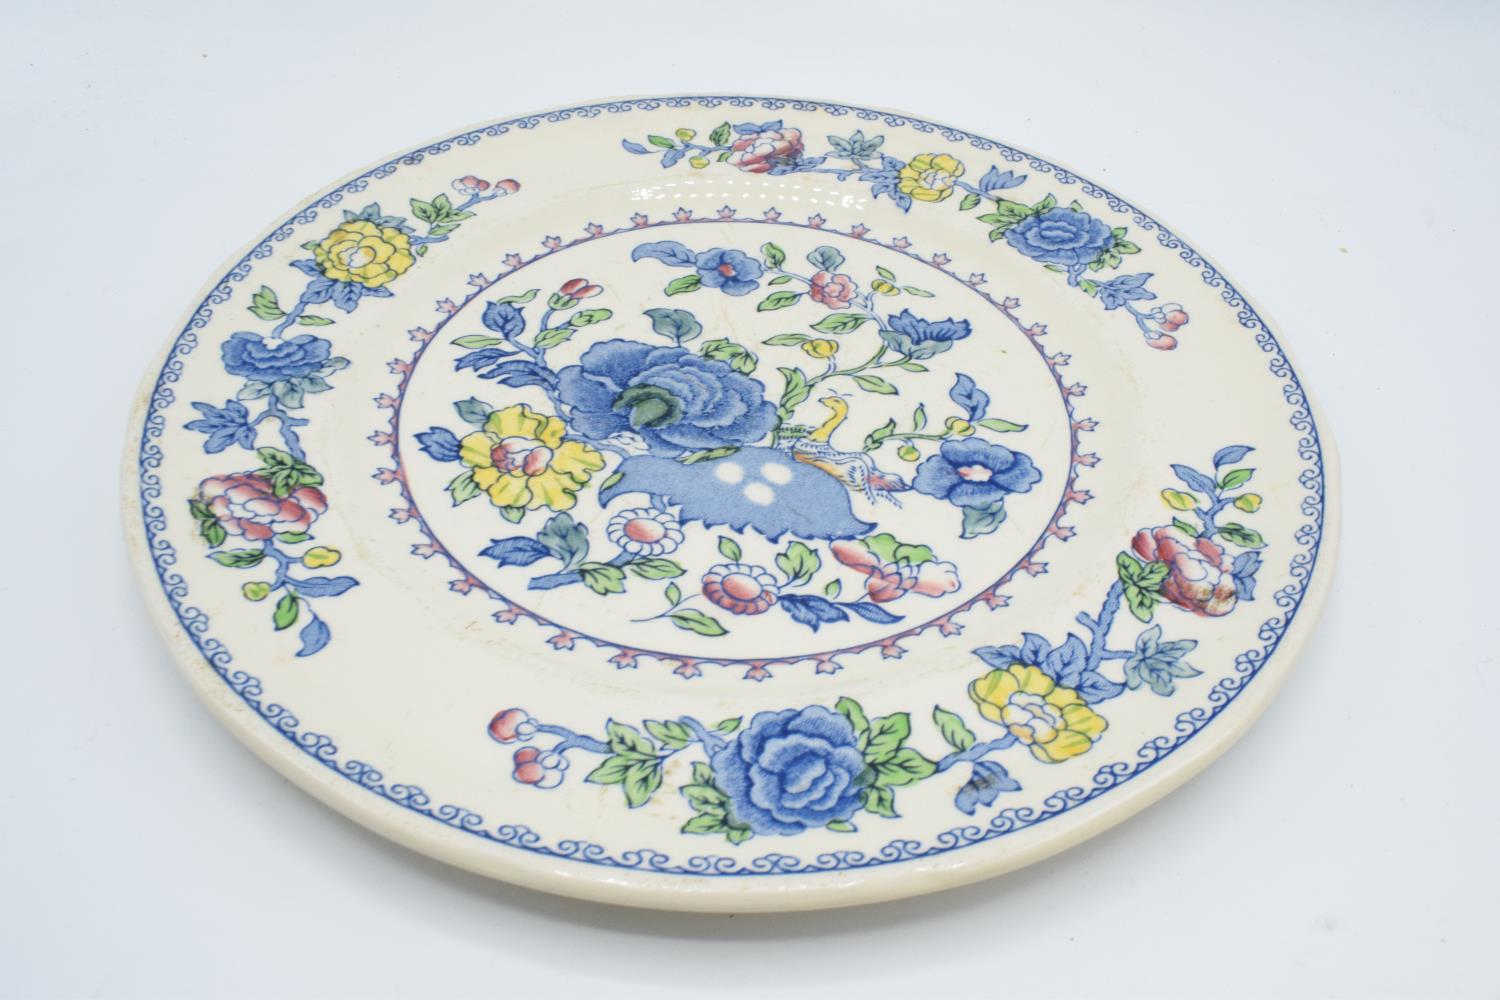 Masons Regency 10'' dinner plates (6) Generally in good condition, one has bad staining - Image 3 of 3